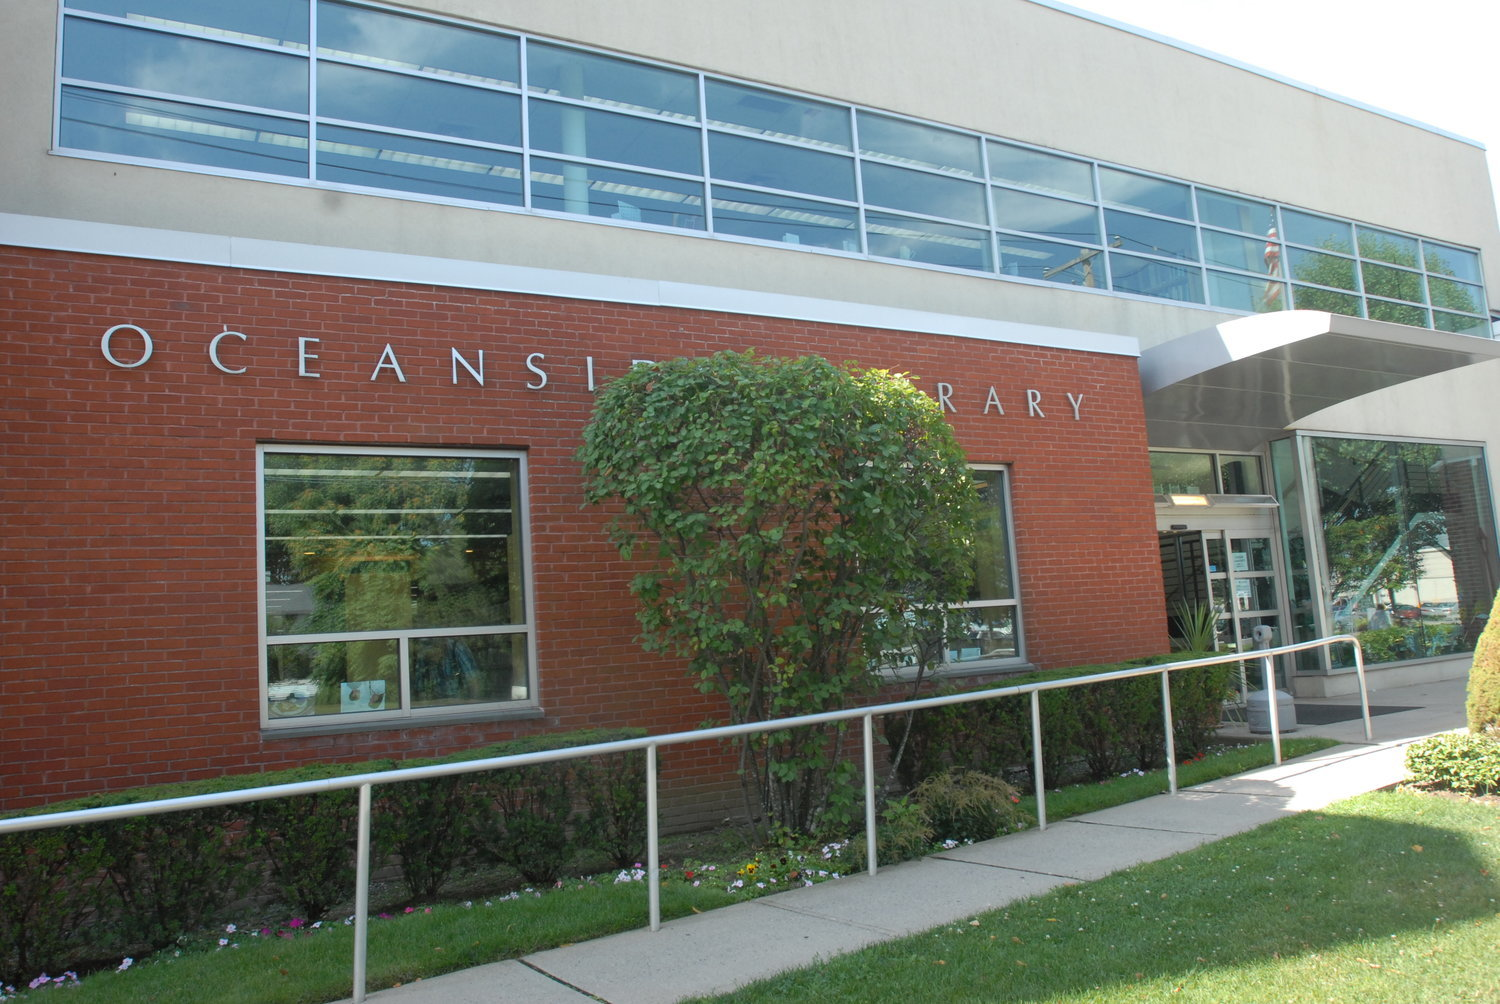 The Oceanside Library's board of directors voted 7-0 to approve putting a $33.5 million bond proposal to a vote to make several repairs and enhancements to the facility. The vote is scheduled for May 19.